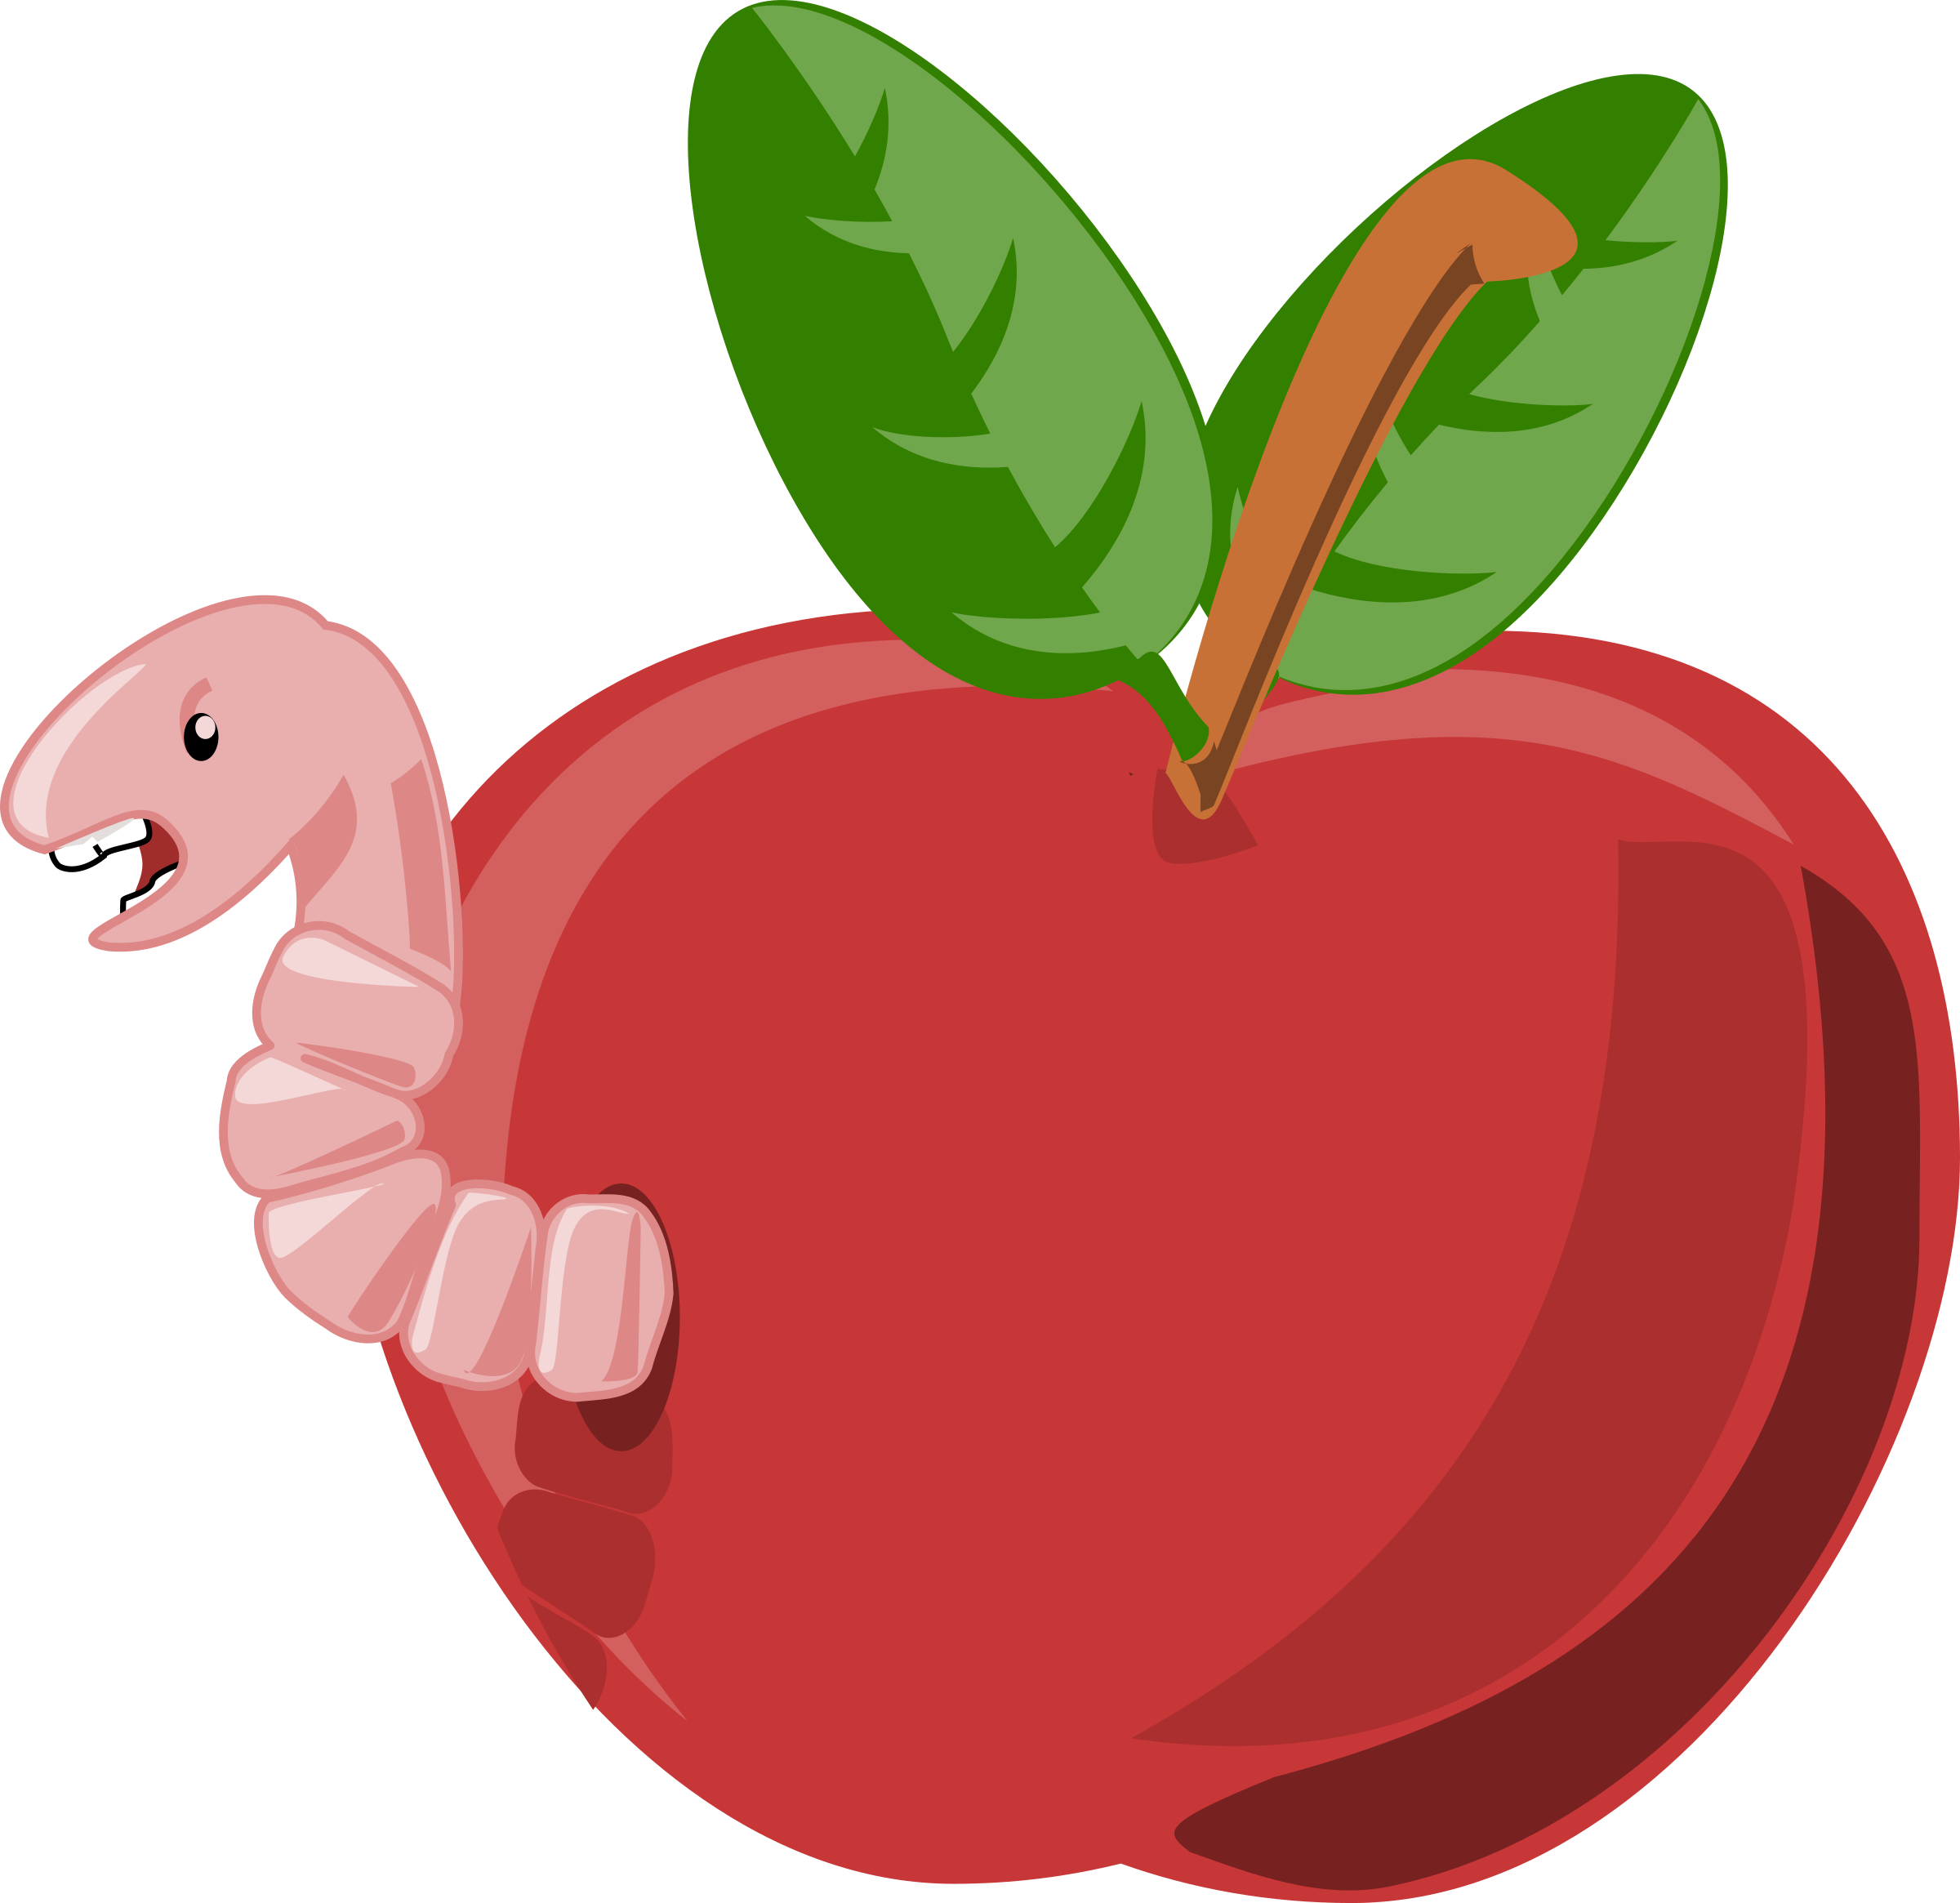 Worm clipart apple worm Worm Clipart cartoon worm with